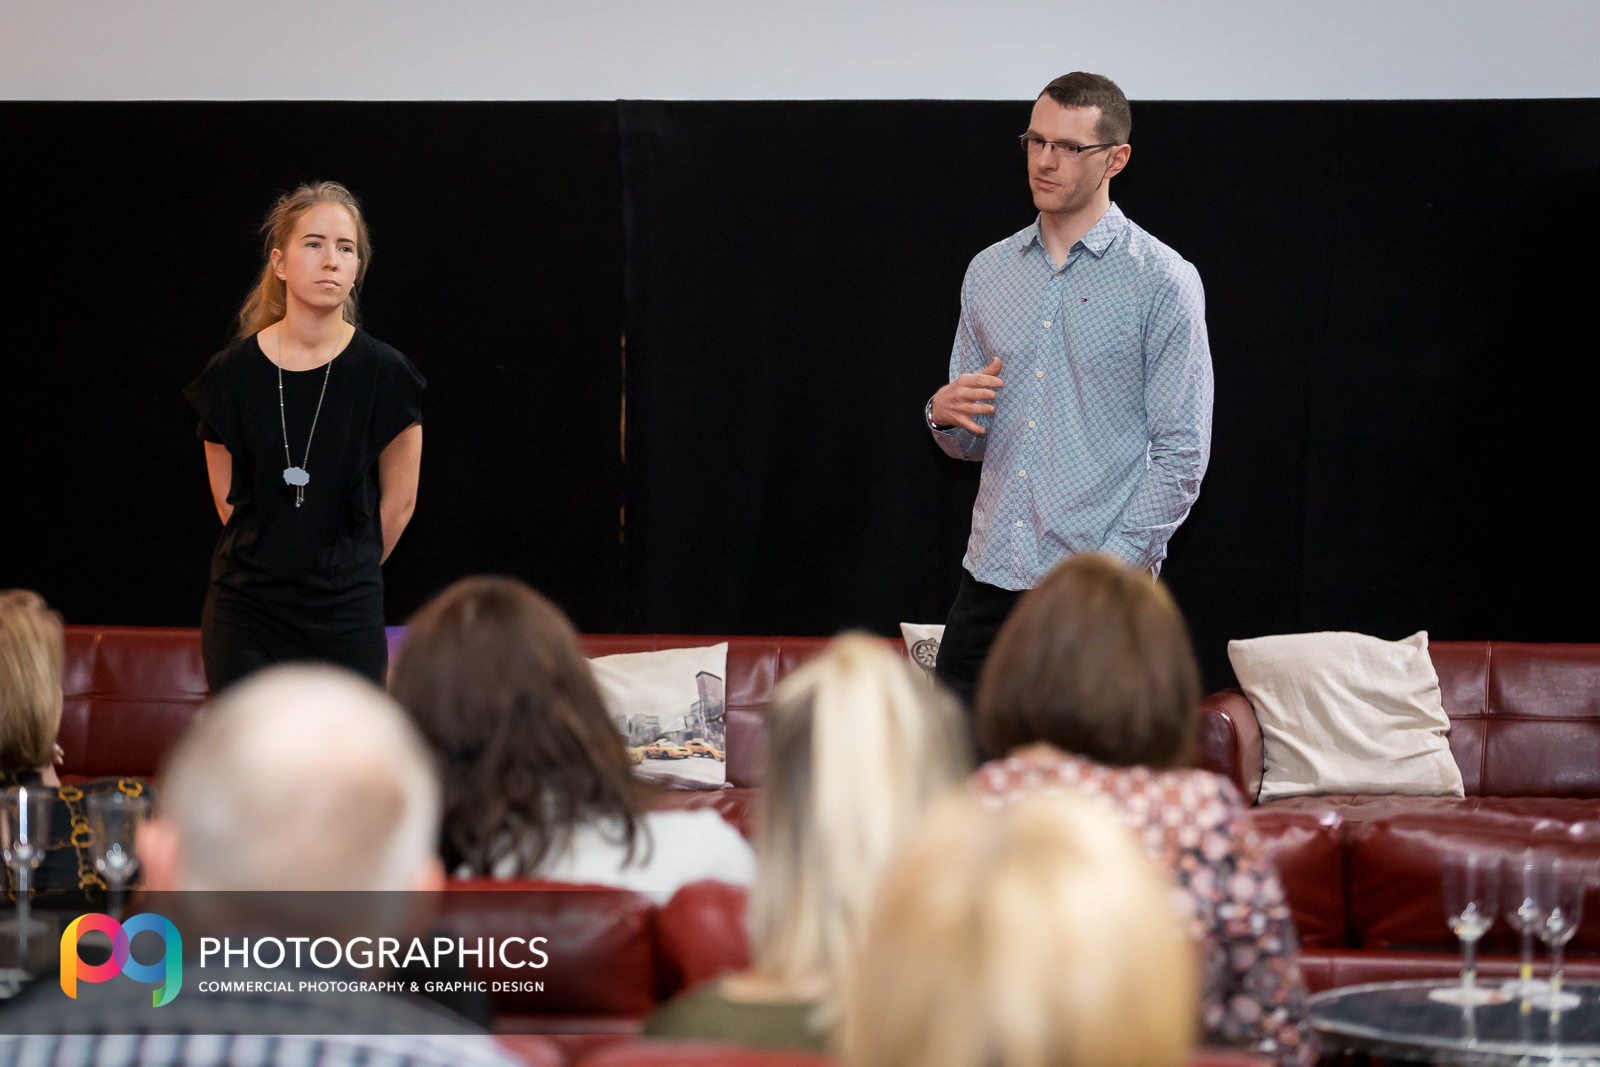 event-PR-photography-edinburgh-glasgow-scotland-8.jpg